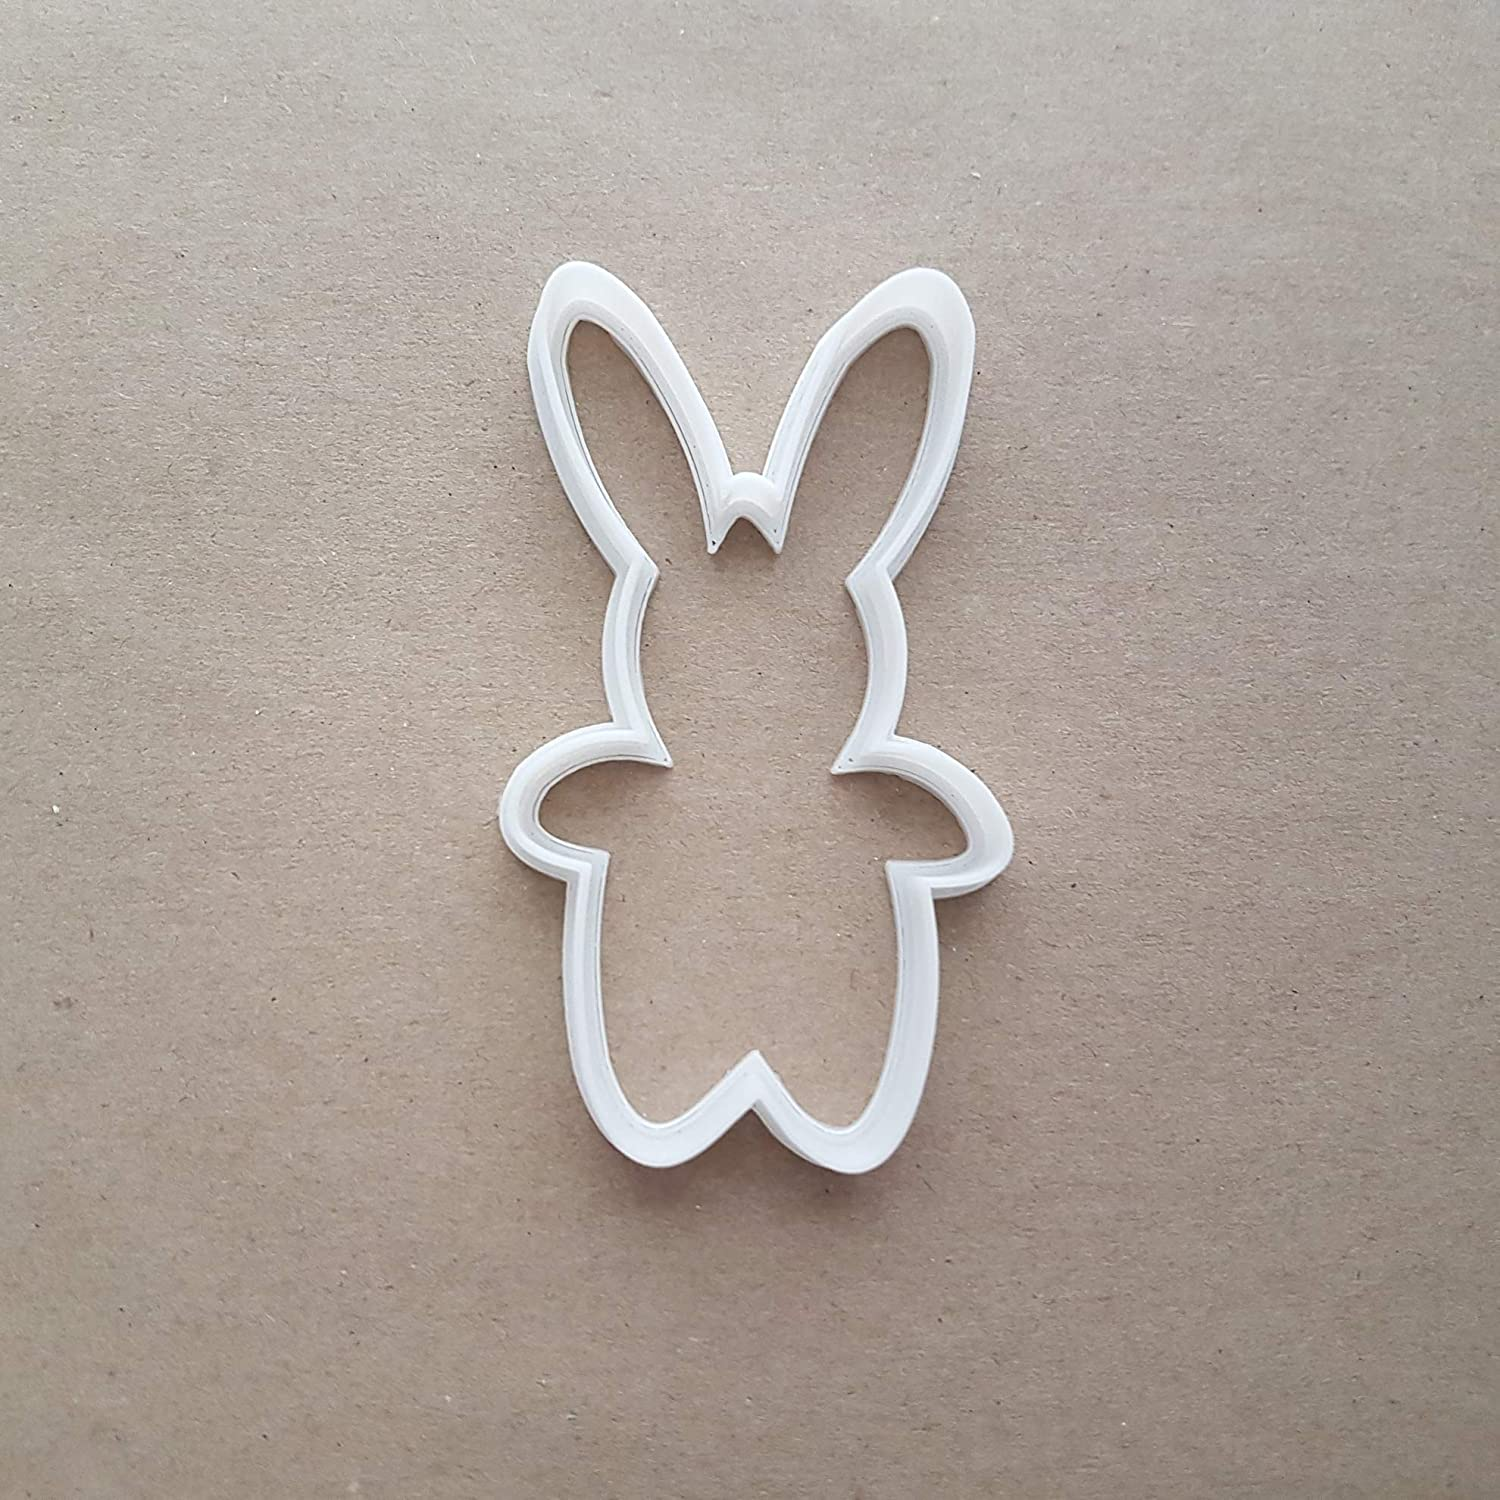 Easter Bunny shape Fondant Cookie Cutter #1102